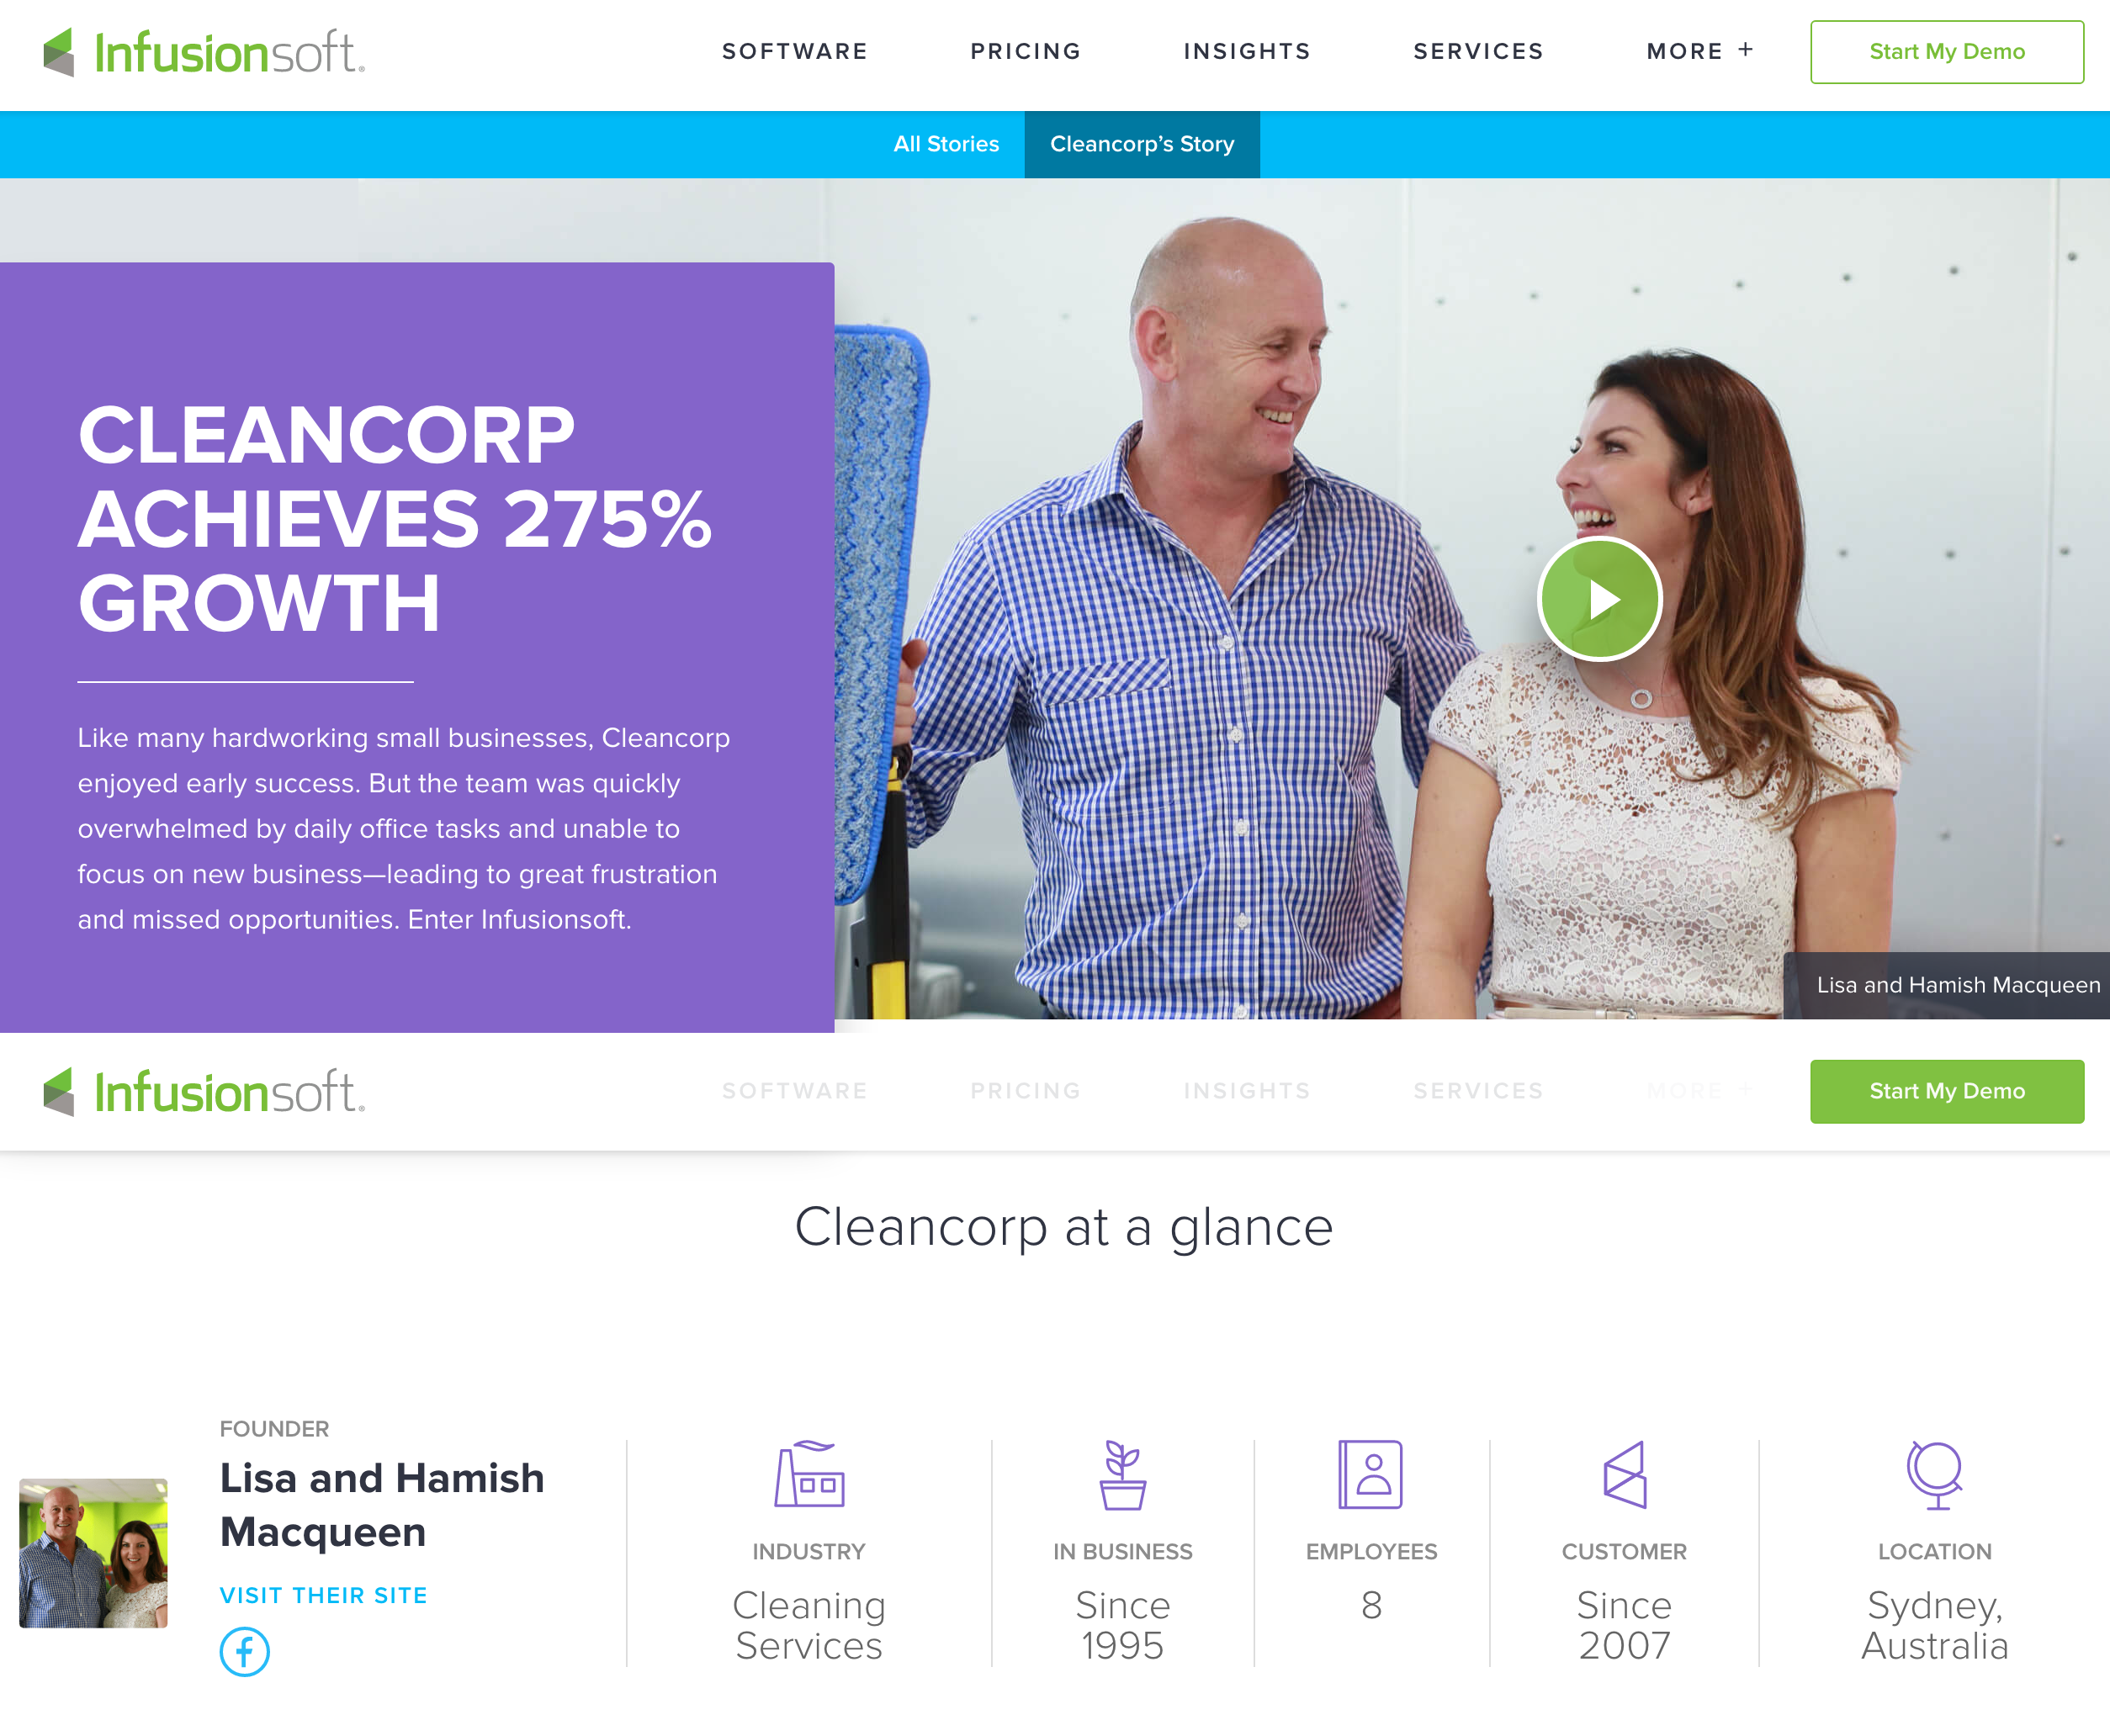 infusionsoft-cleancorp-case-study